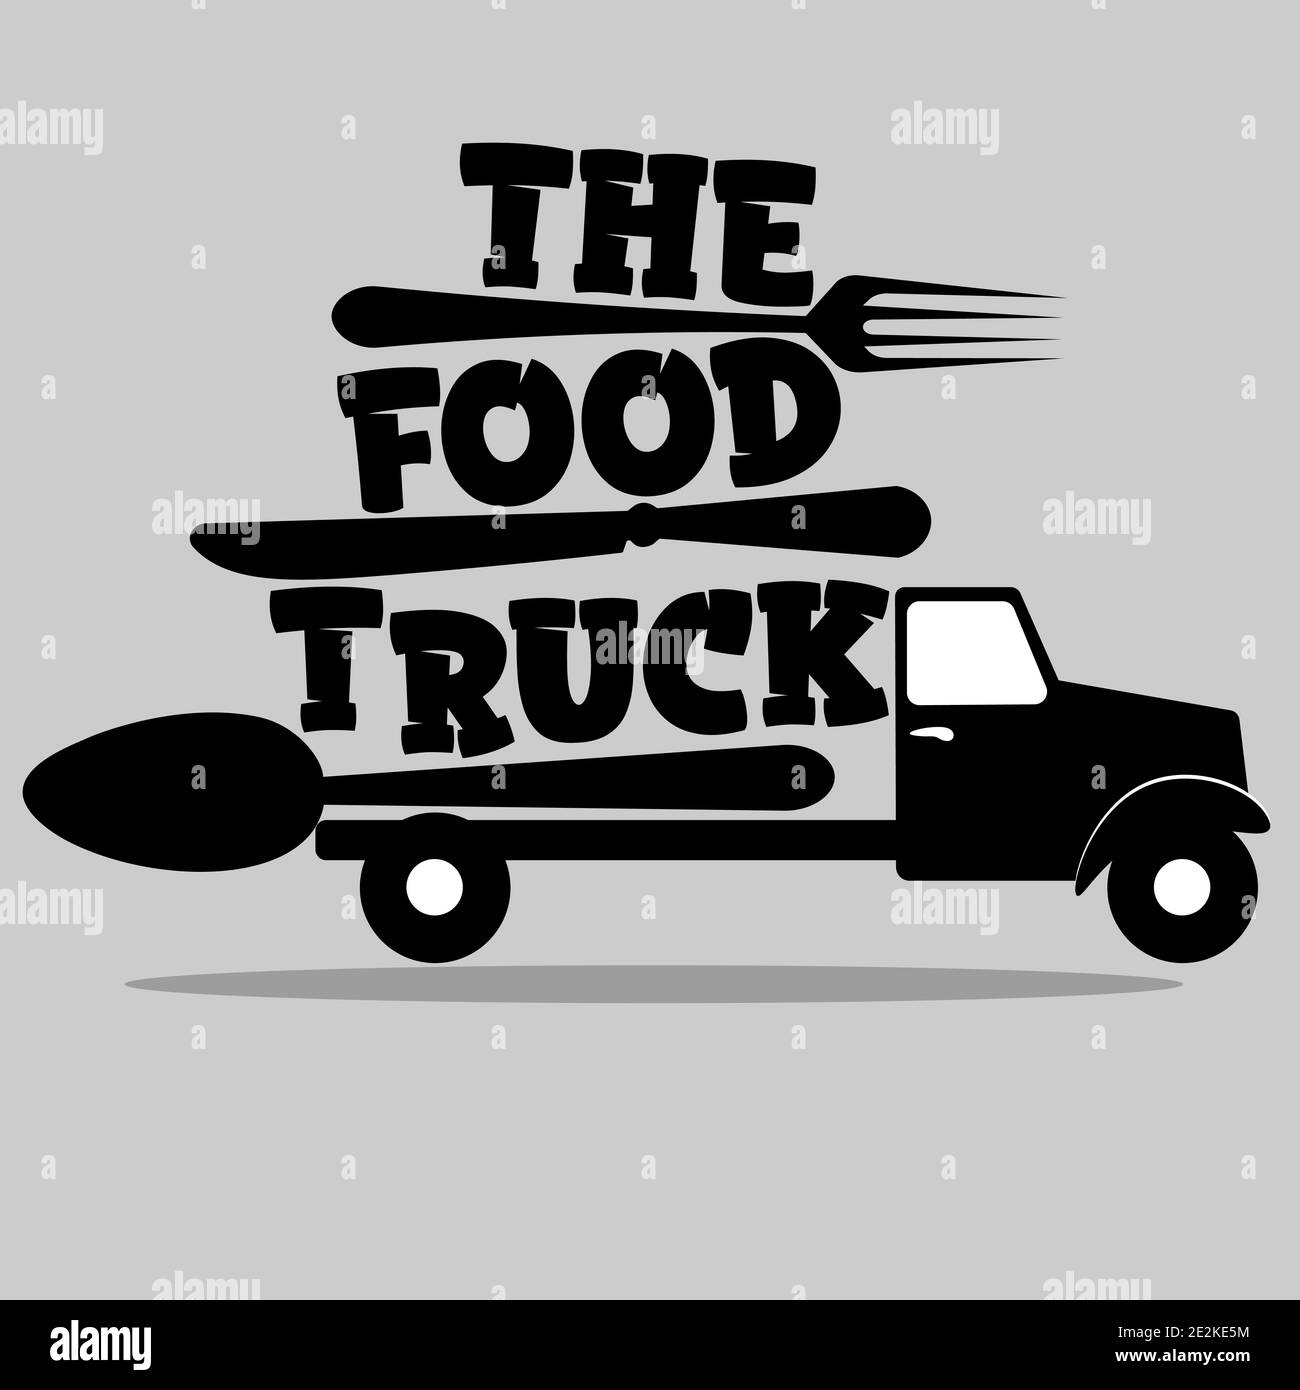 street food truck logo with spoon, fork and knife 2 Stock Vector